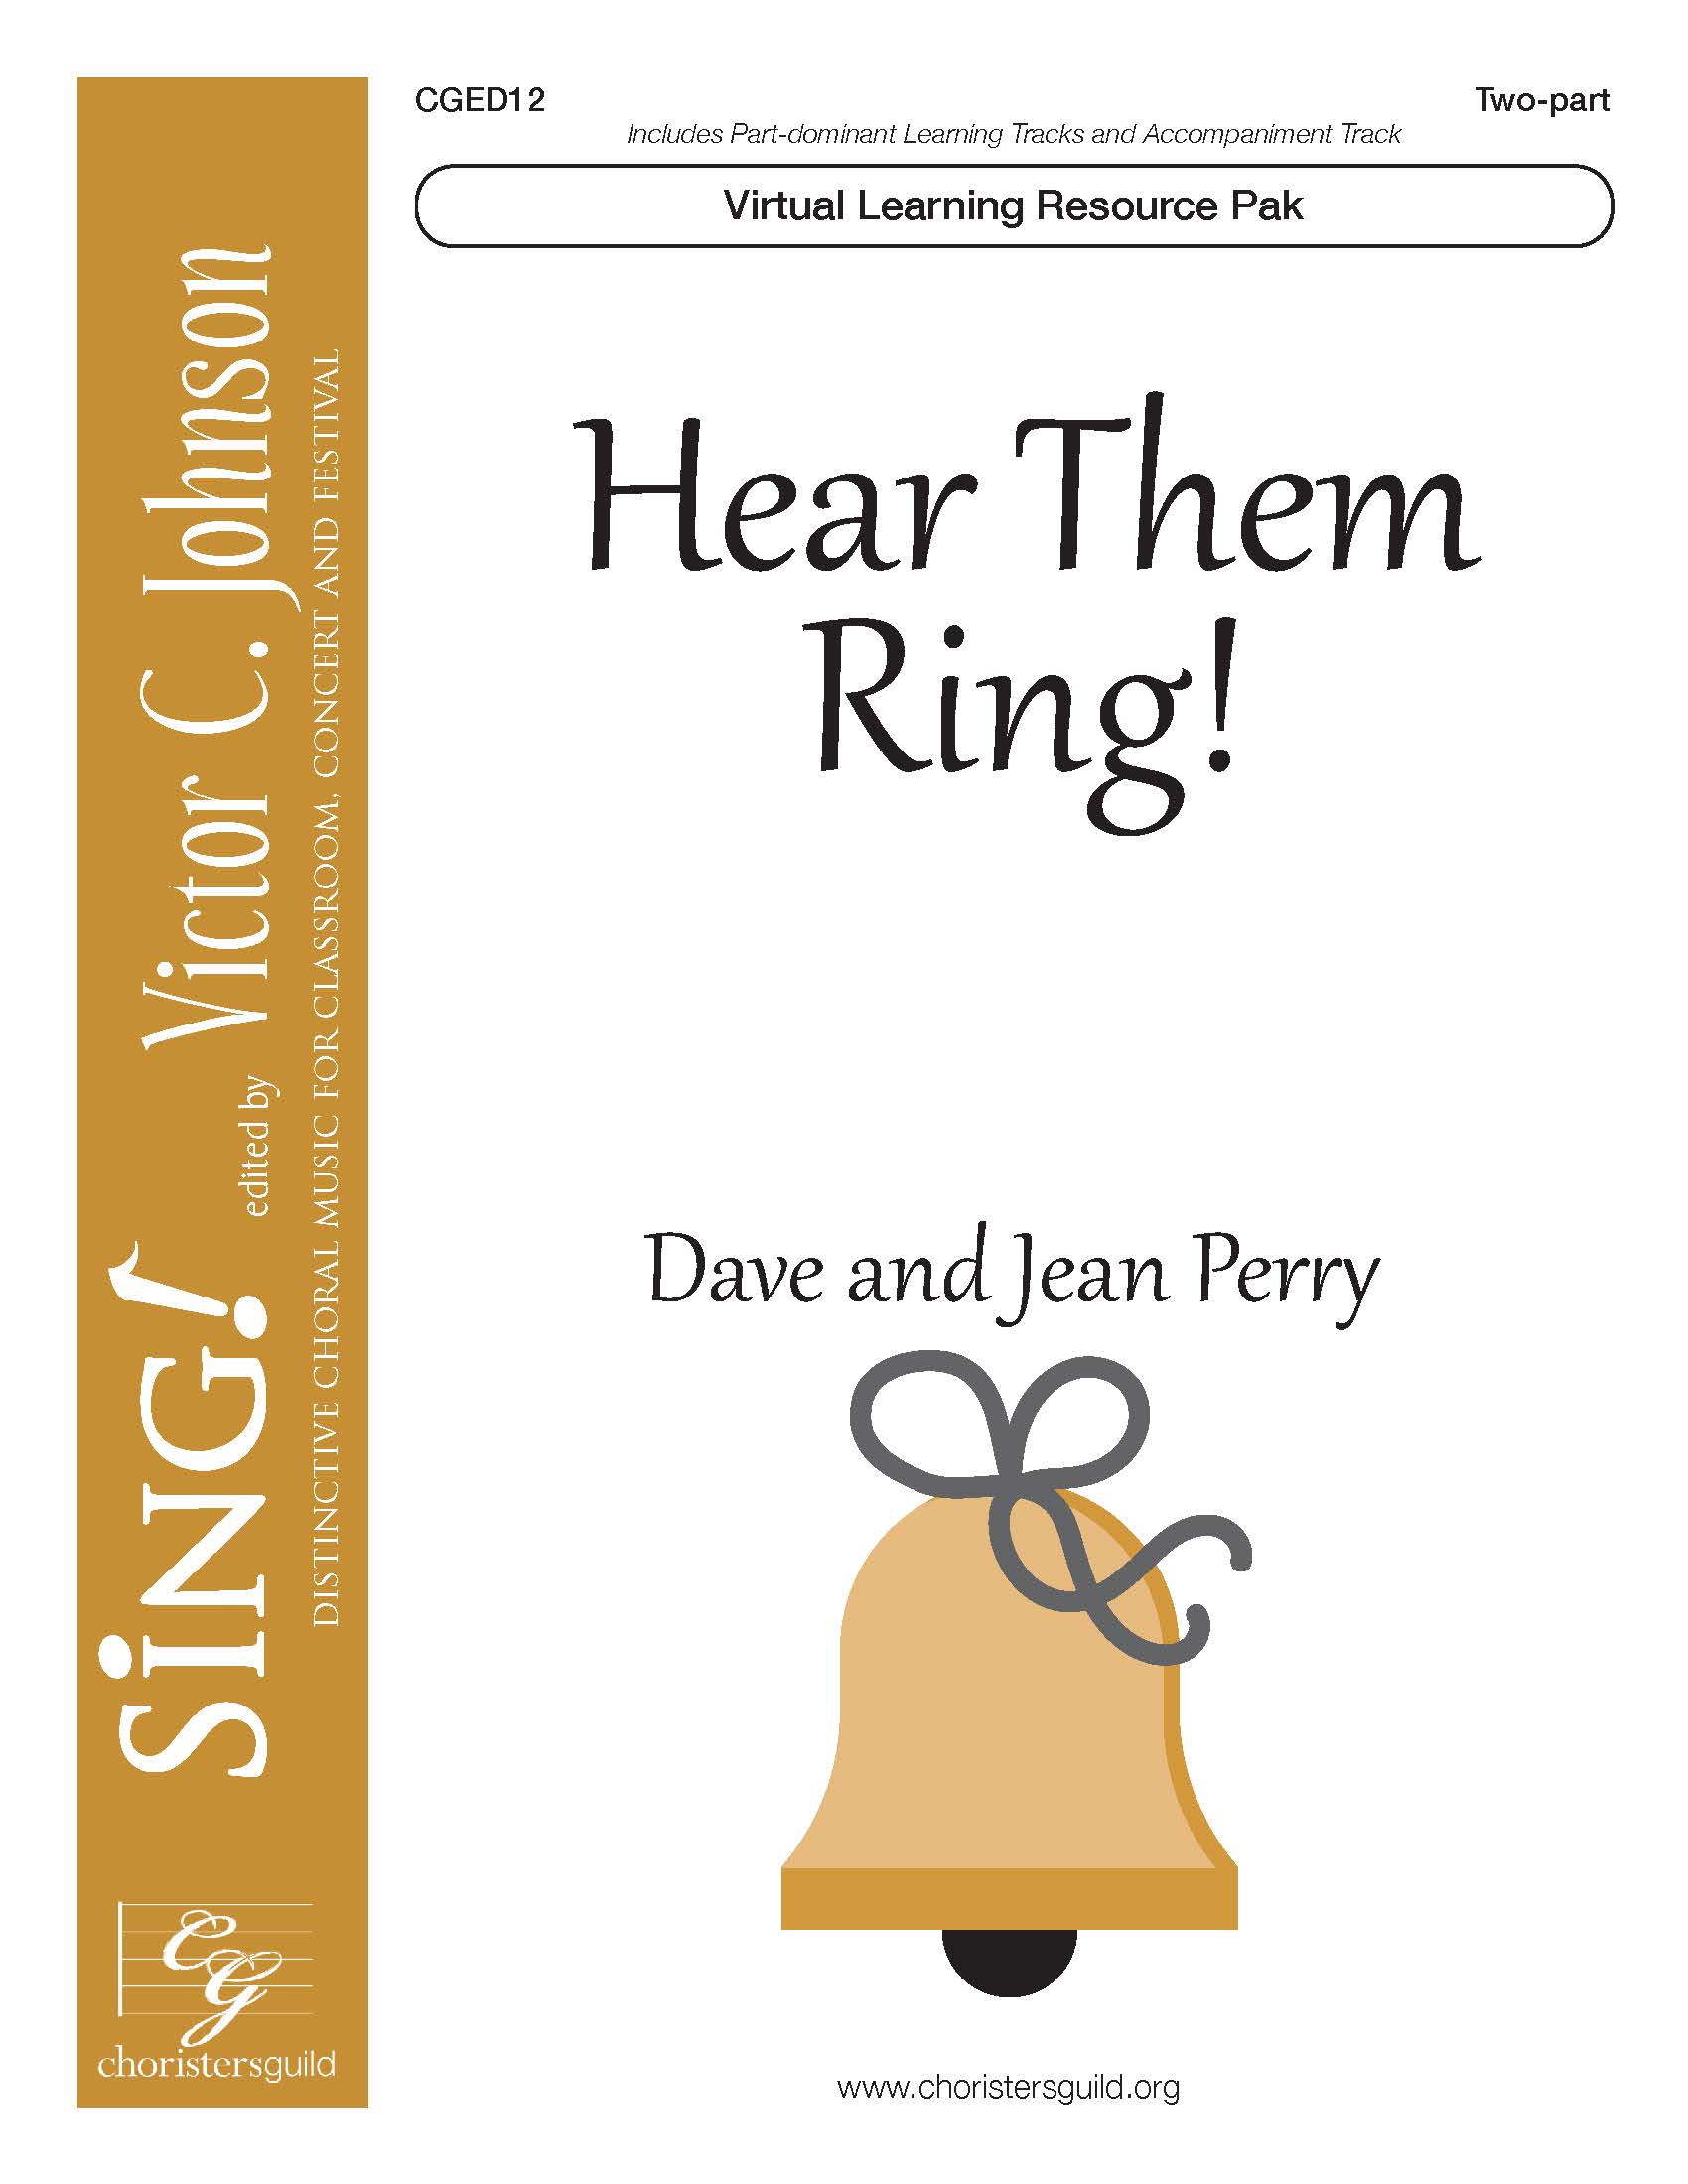 Hear Them Ring! (Virtual Learning Resource Pak) - Two-part